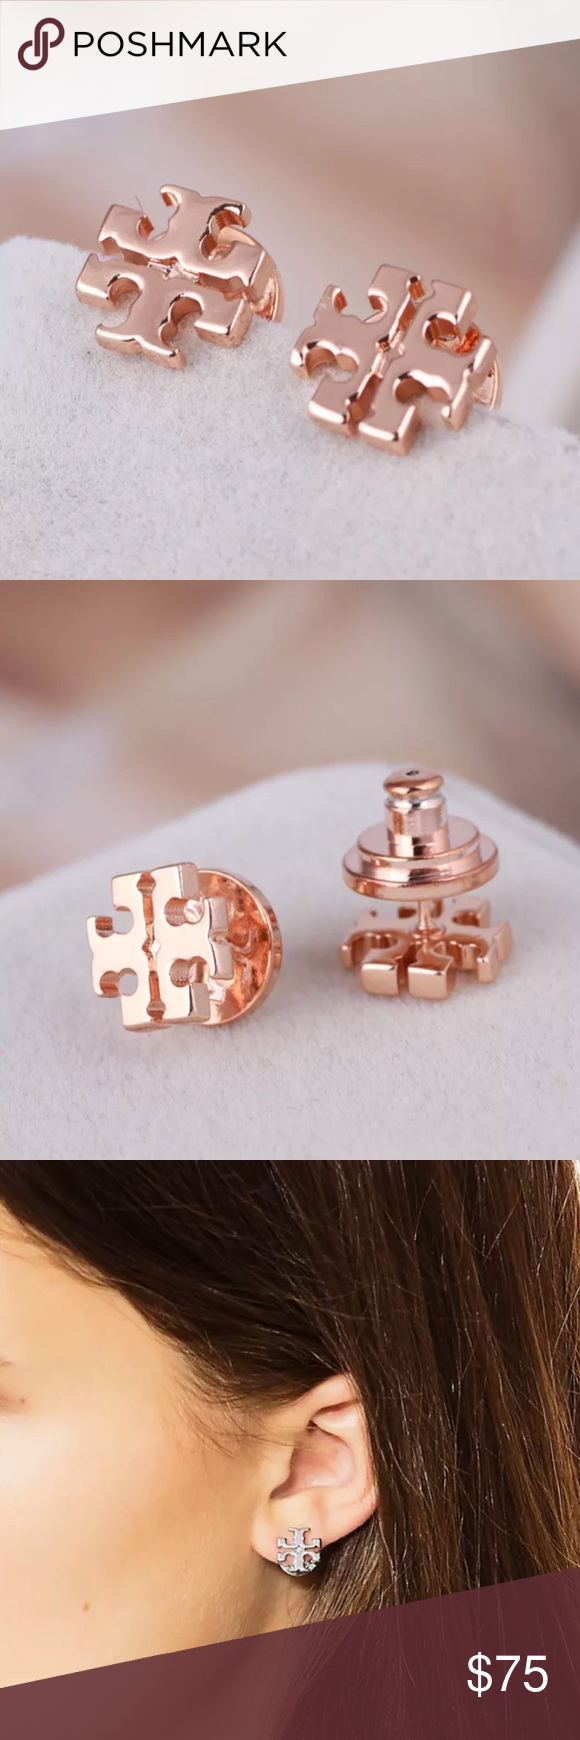 Tory Burch Rose Gold Small T Logo Stud Earrings The Iconic Gleaming Styles